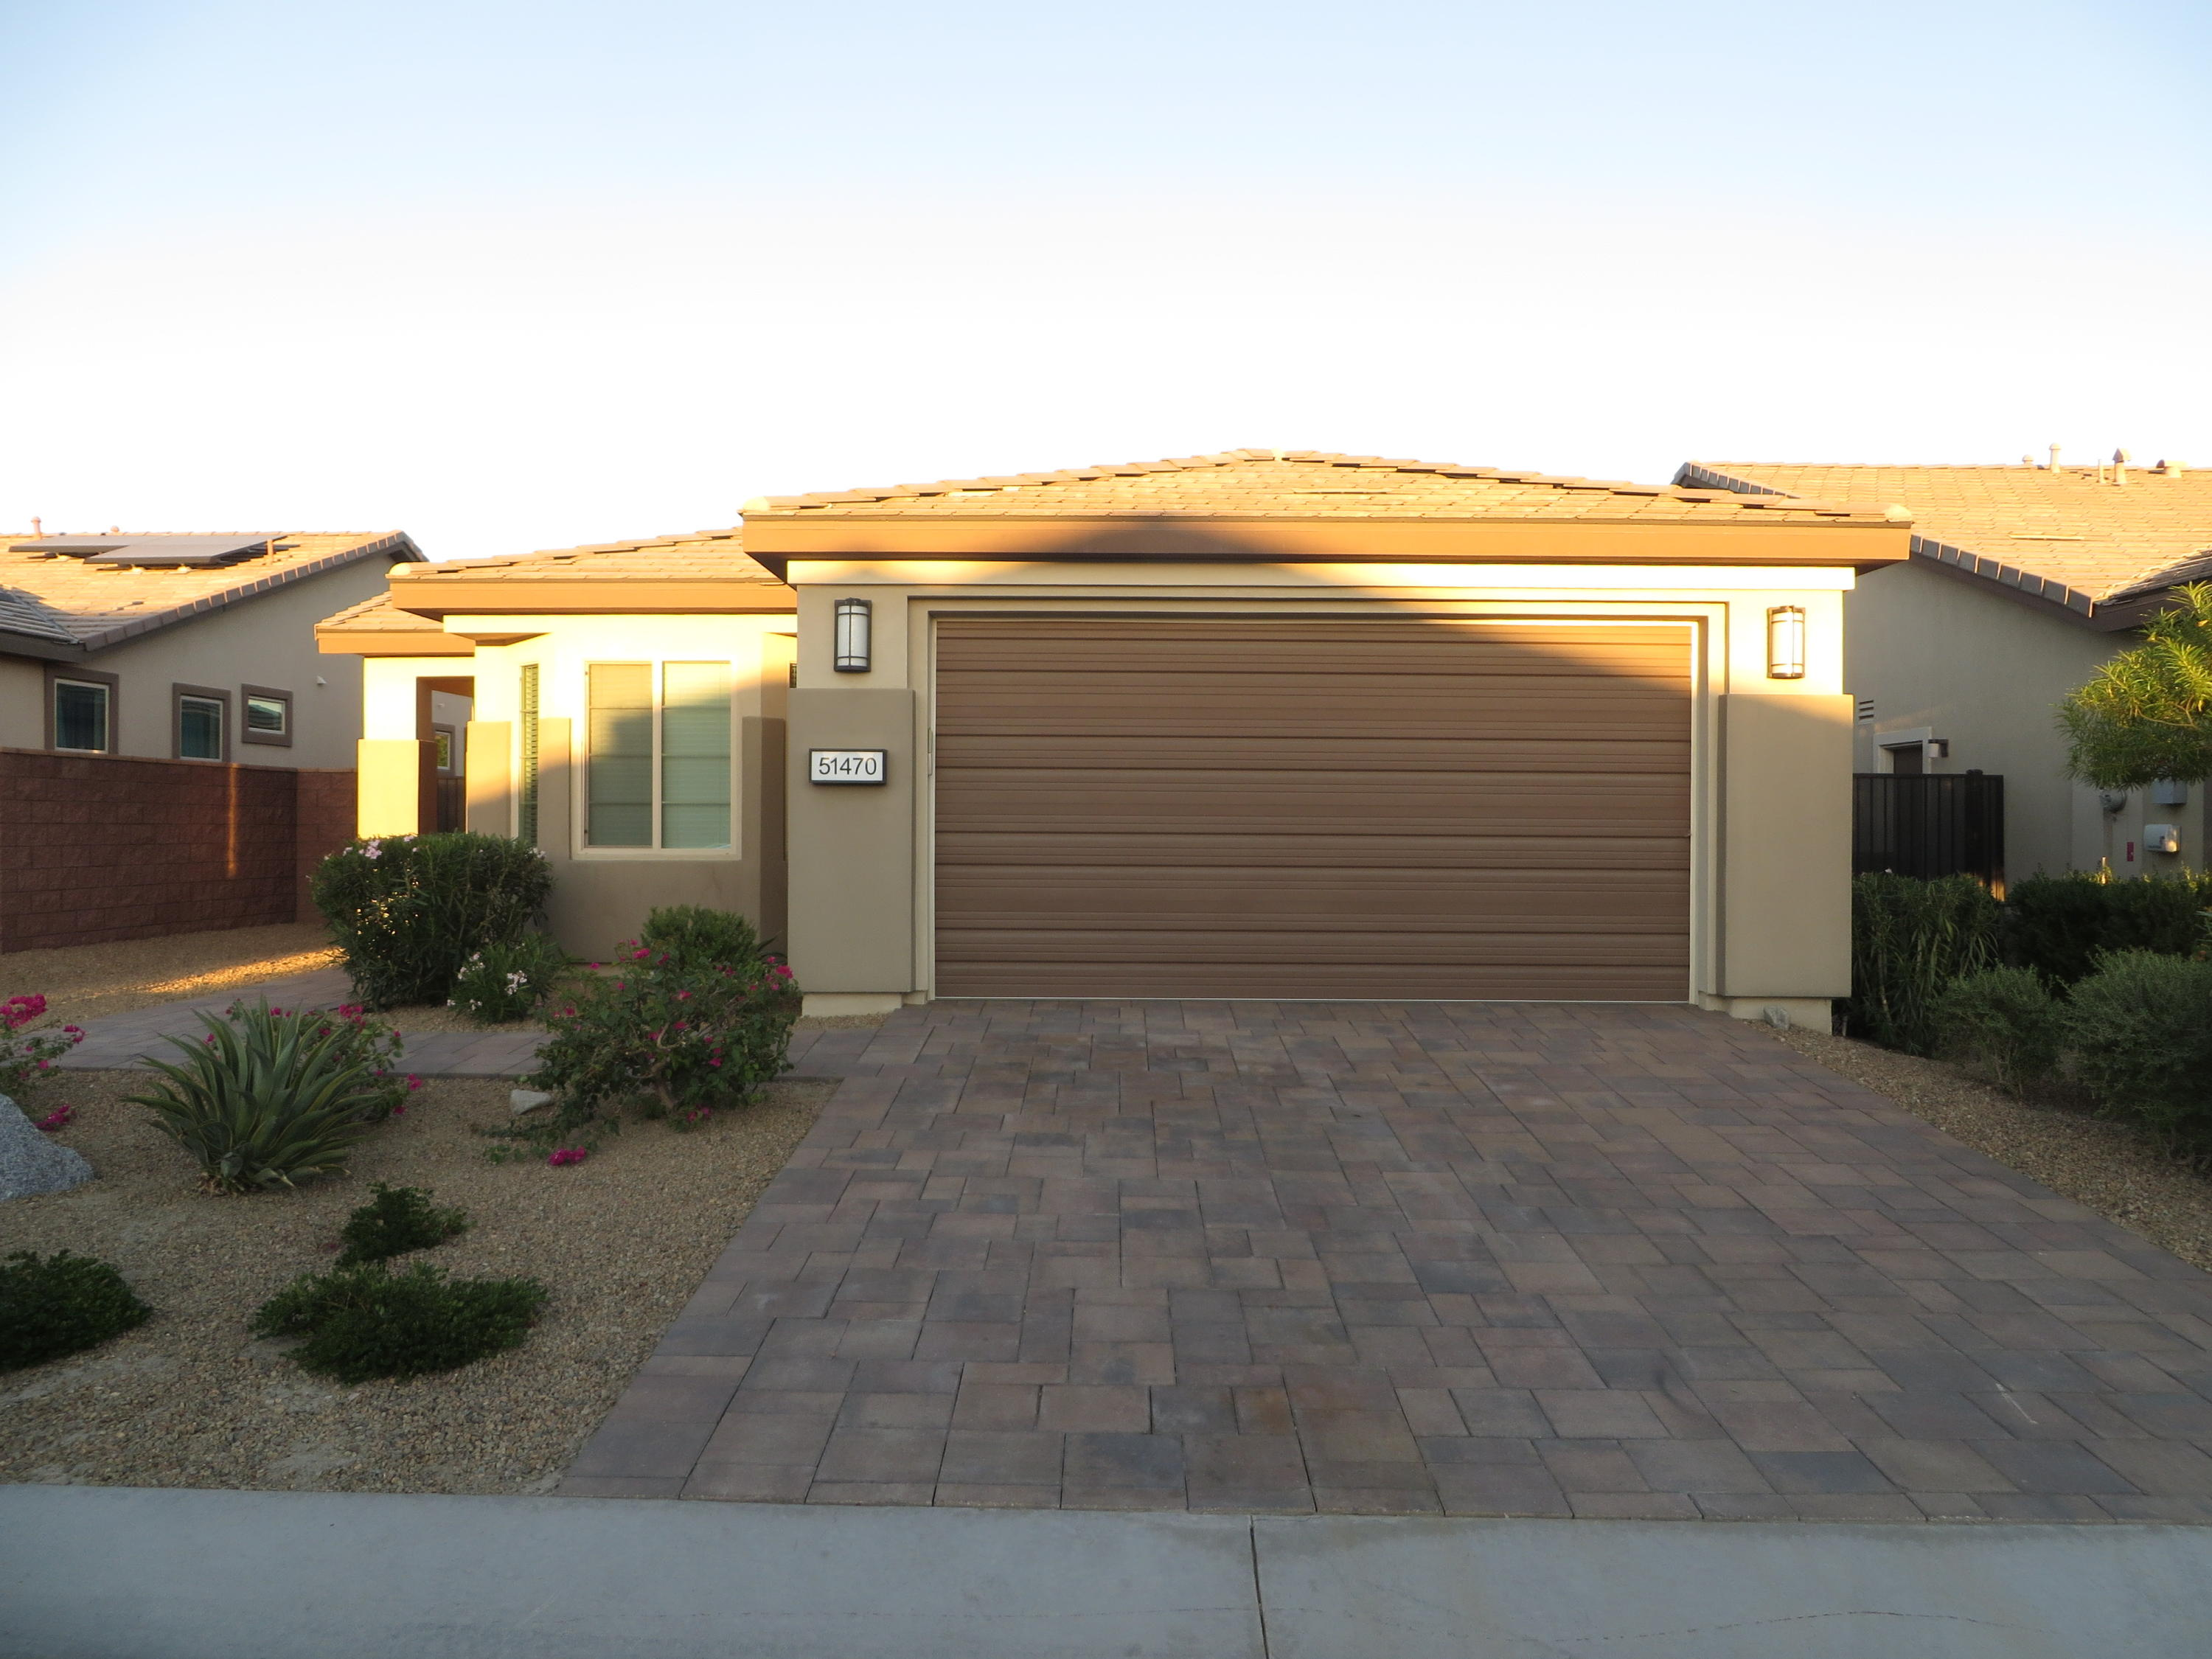 Photo of 51470 Clubhouse Drive, Indio, CA 92201